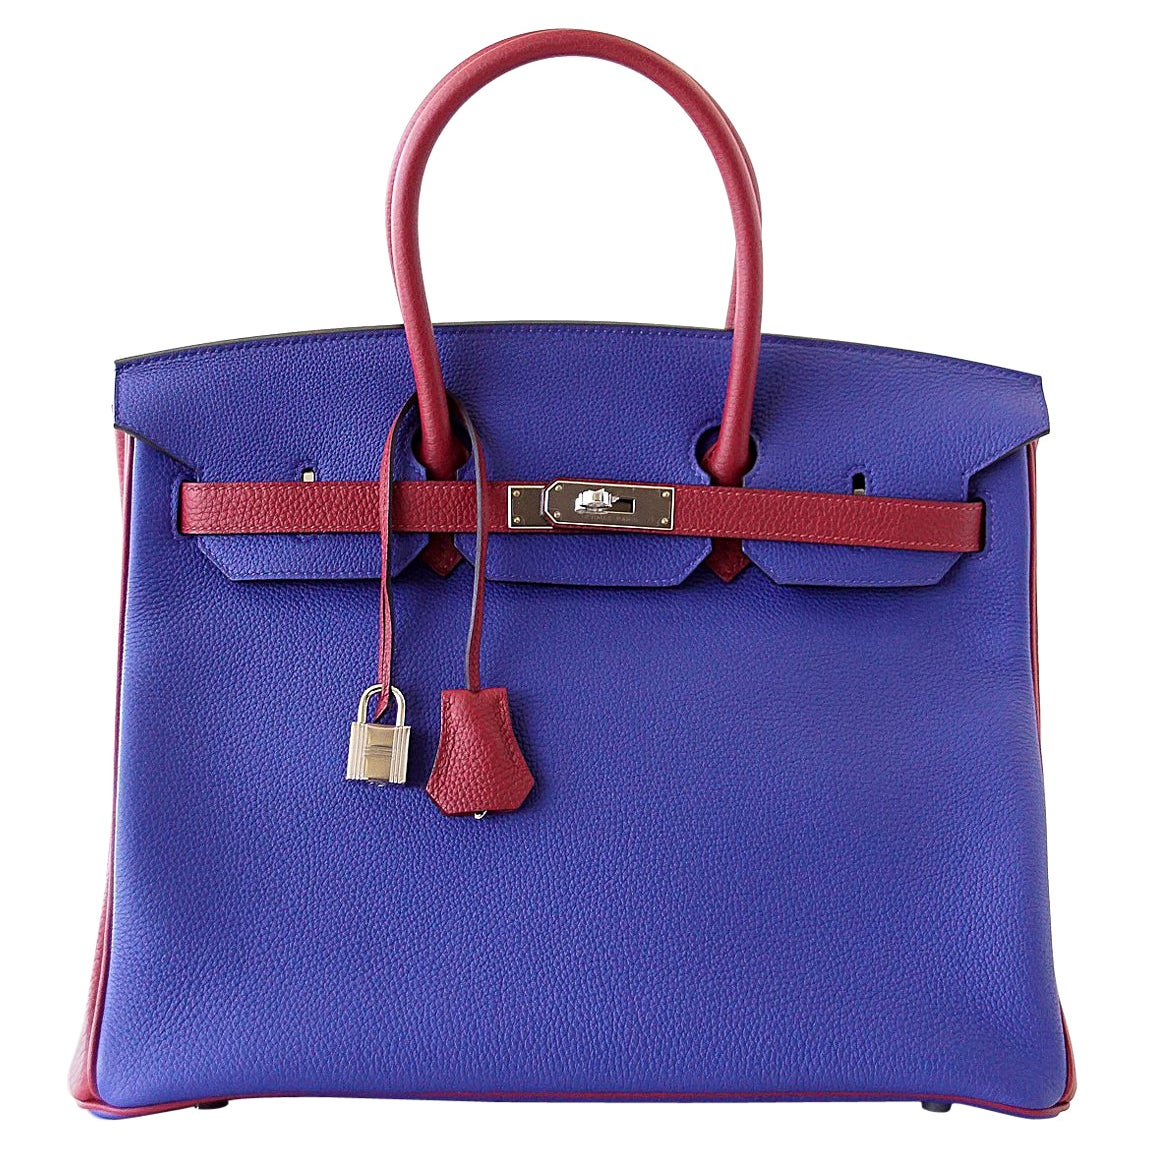 Hermes Birkin 35 Bag HSS Electric Blue Rouge Grenat Togo Leather Palladium